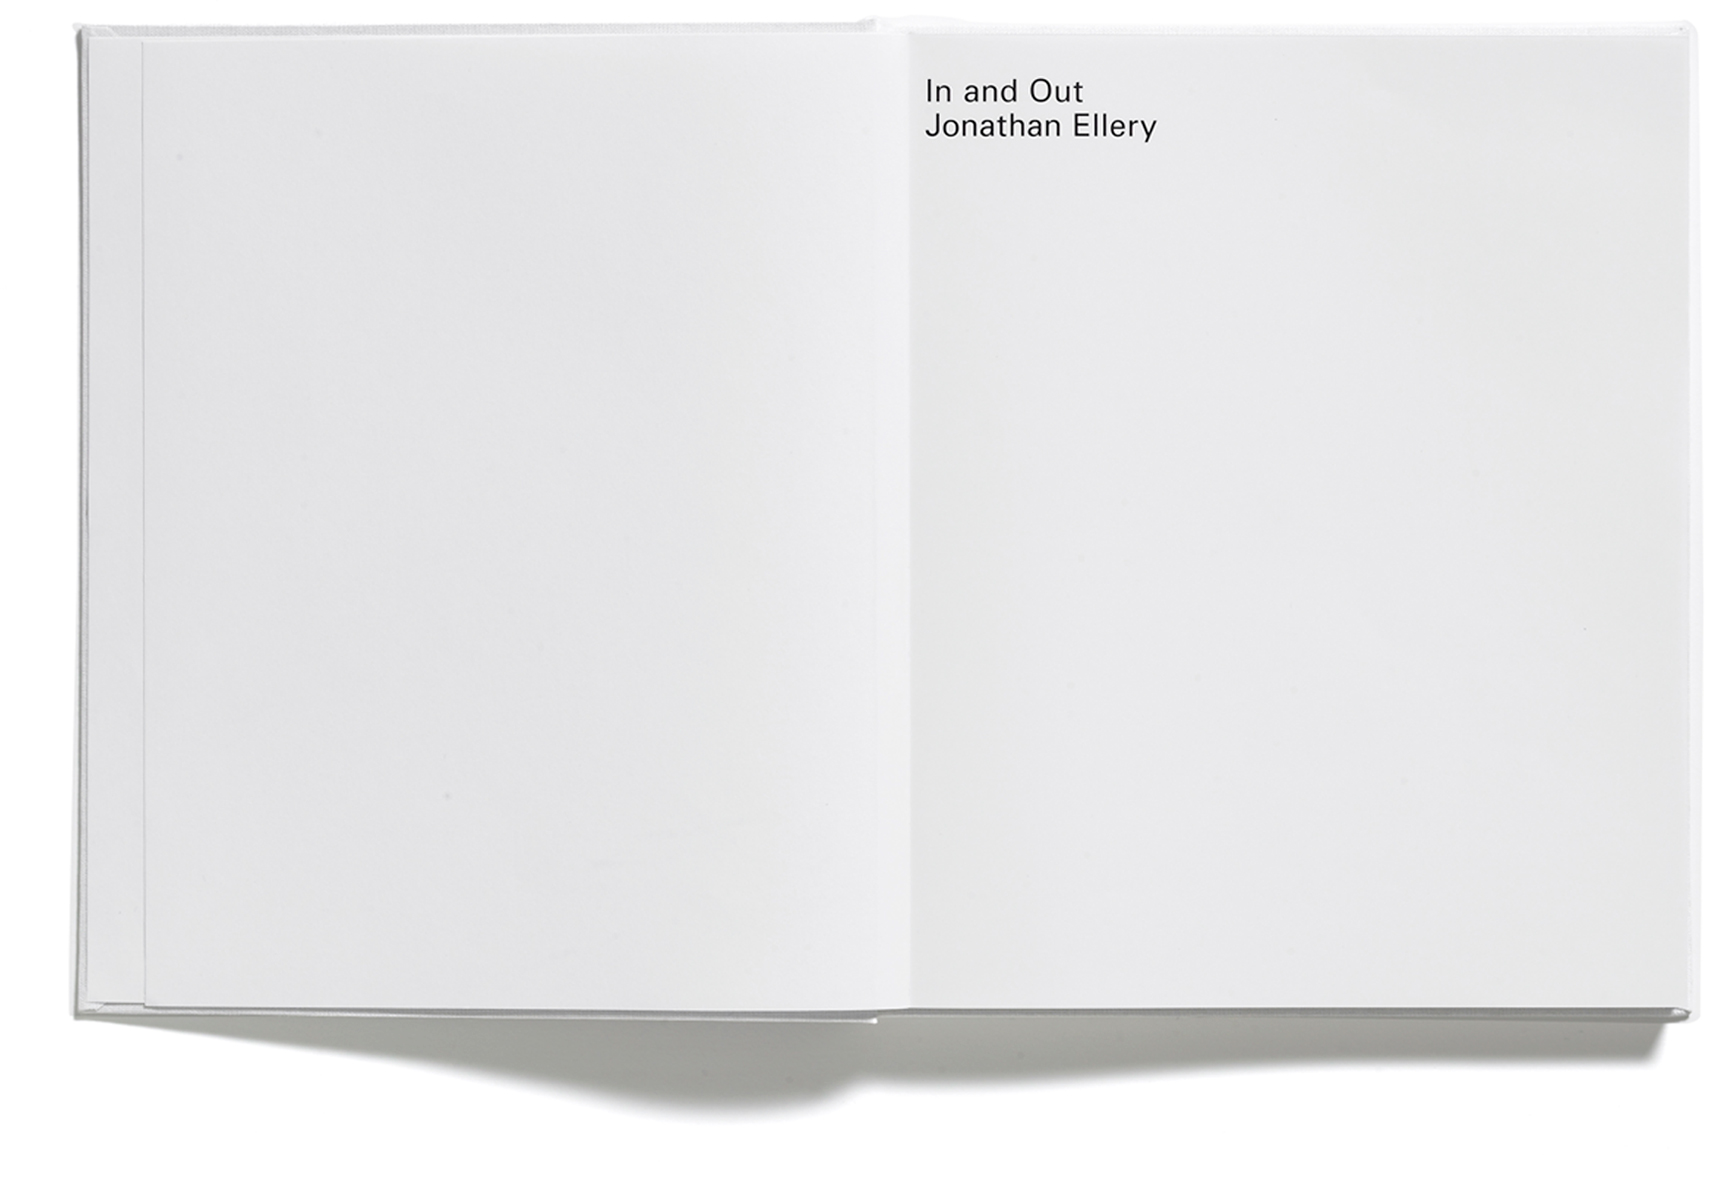 In and Out, Jonathan Ellery, Published by Browns Editions, Designed by Browns Design